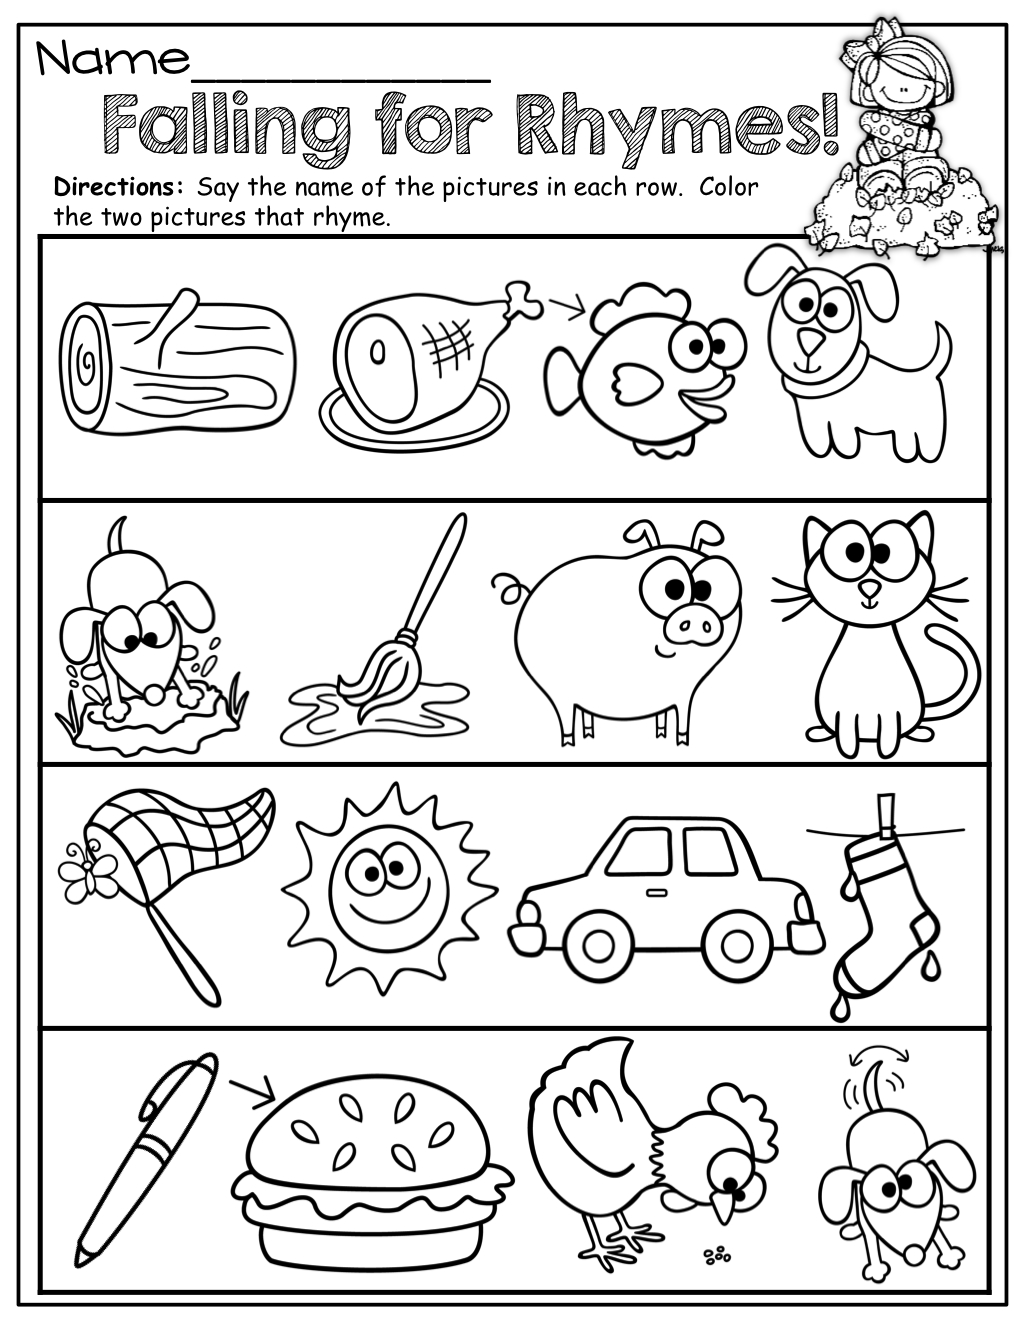 hight resolution of Rhyming Words Worksheets   Printable Worksheets and Activities for  Teachers